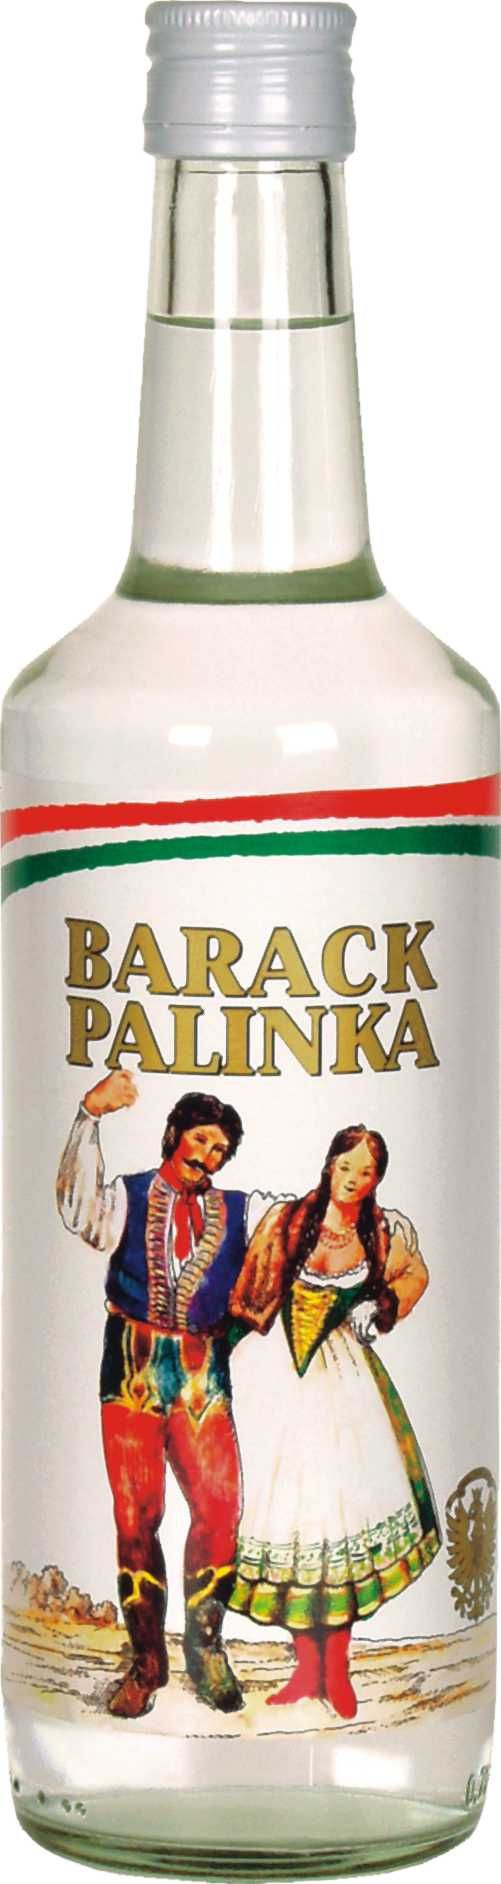 "Pálinka- a traditional fruit brandy.Under the 2008 ""Hungarian Pálinka Law"", only fruit spirits distilled from a mash of ripe fruits produced in Hungary, mashed, distilled, matured and bottled locally can be called pálinka. Fruit spirits made from concentrates, semi-dried or dried fruit cannot legally be called pálinka. A popular saying in Hungary says: what can be used to prepare jam can also be used to produce pálinka."